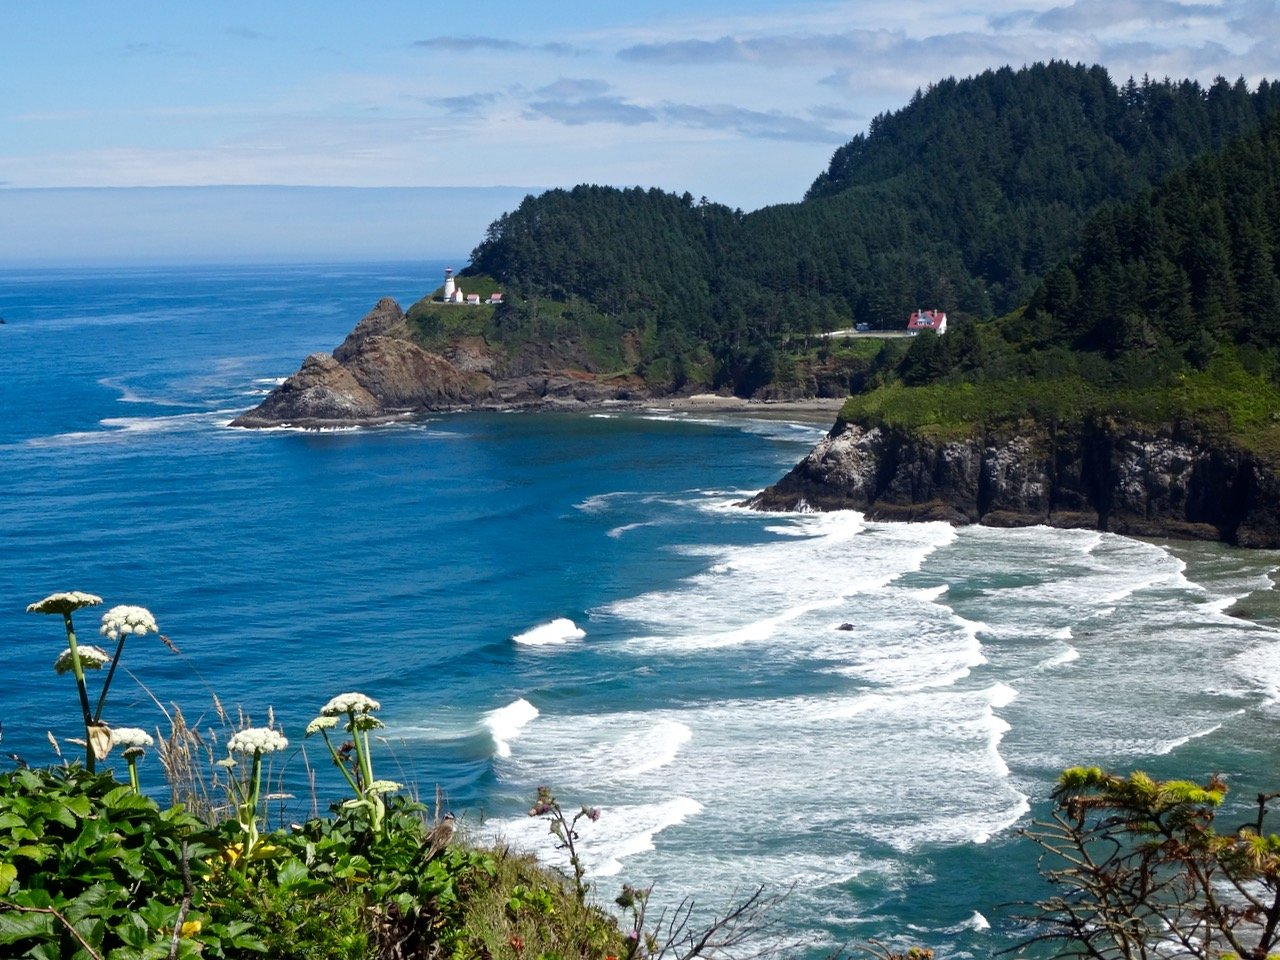 Closer View of Heceta Head Lighthouse and Beach